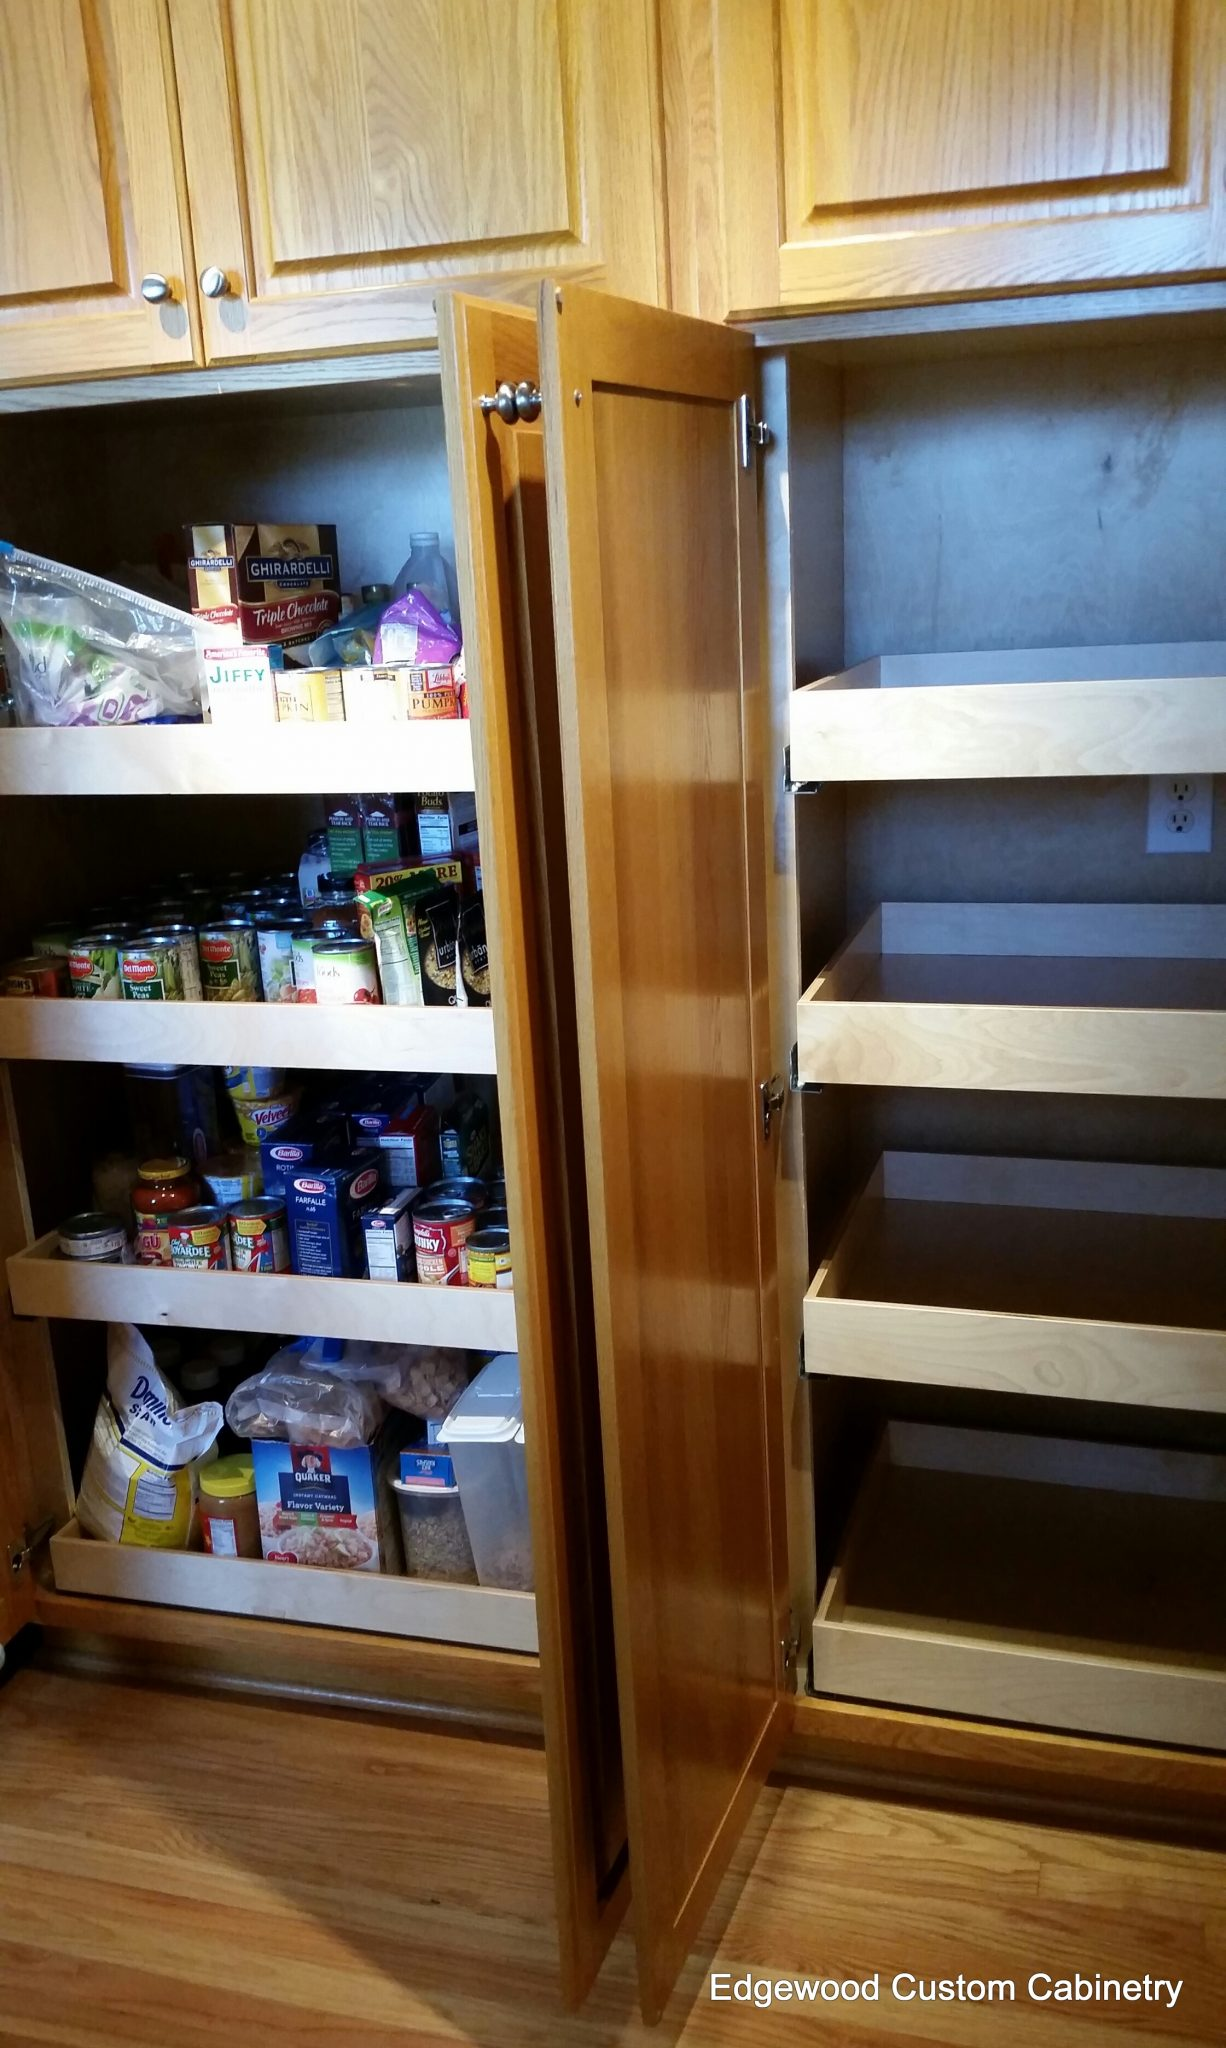 pantry pull outs-edgewood cabinetry